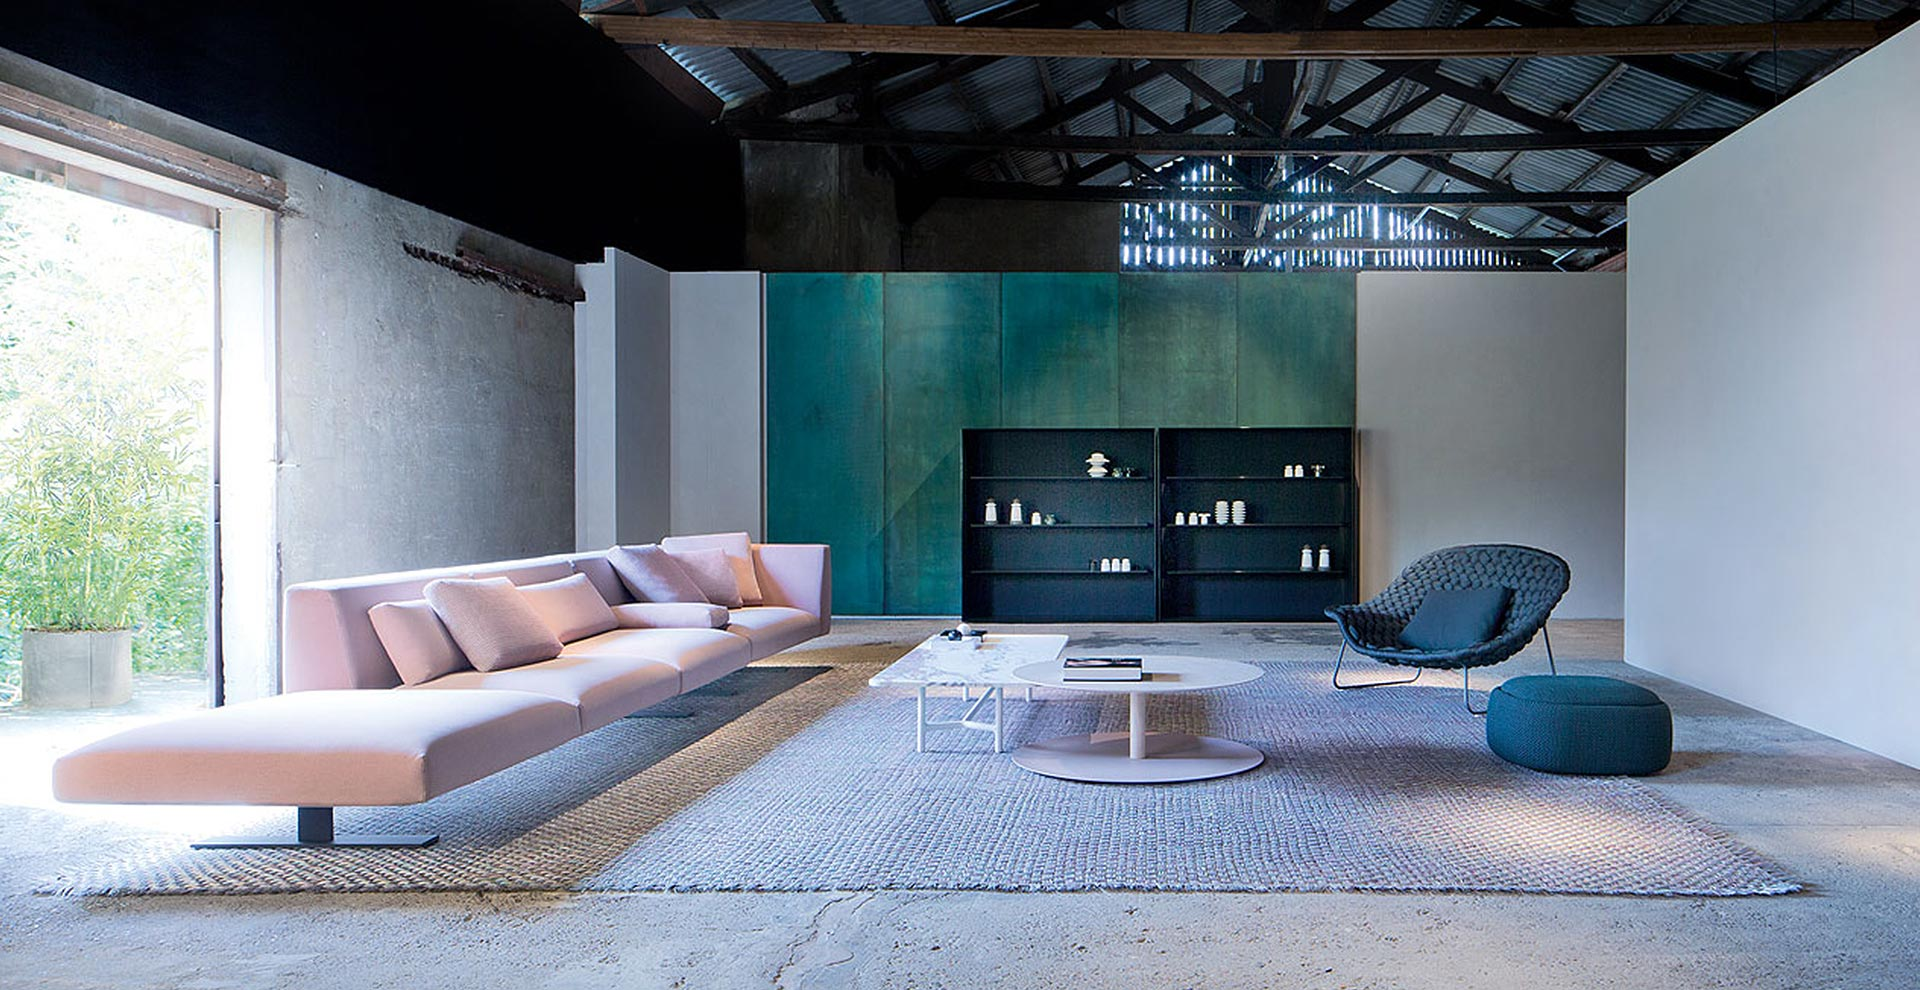 High Tech Paola Lenti - carpets high tech paola lenti